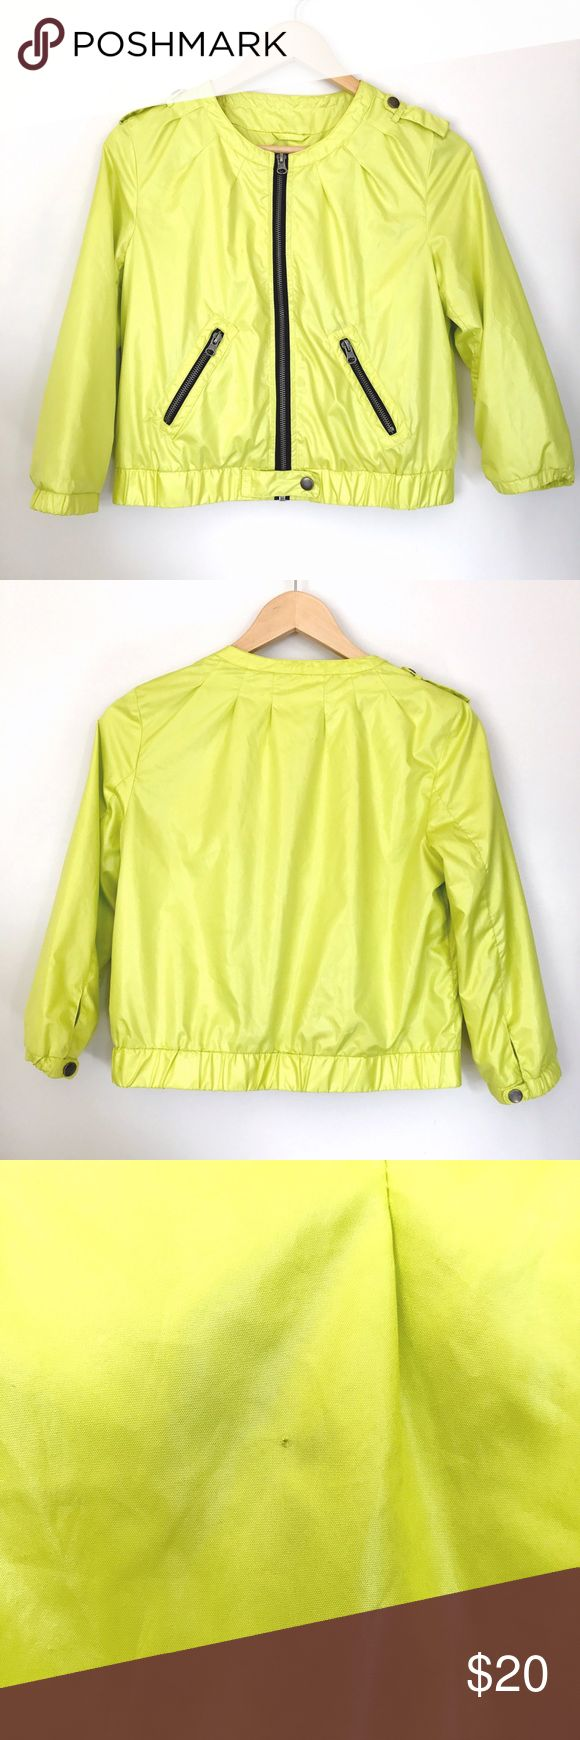 """XXI thin yellow zip up jacket XXI thin yellow zip up jacket   Material (shell & lining) 100% Polyester   Measurements Bust: 18"""" Waist: 16"""" Length: 19""""  Offers welcome! XXI Jackets & Coats"""